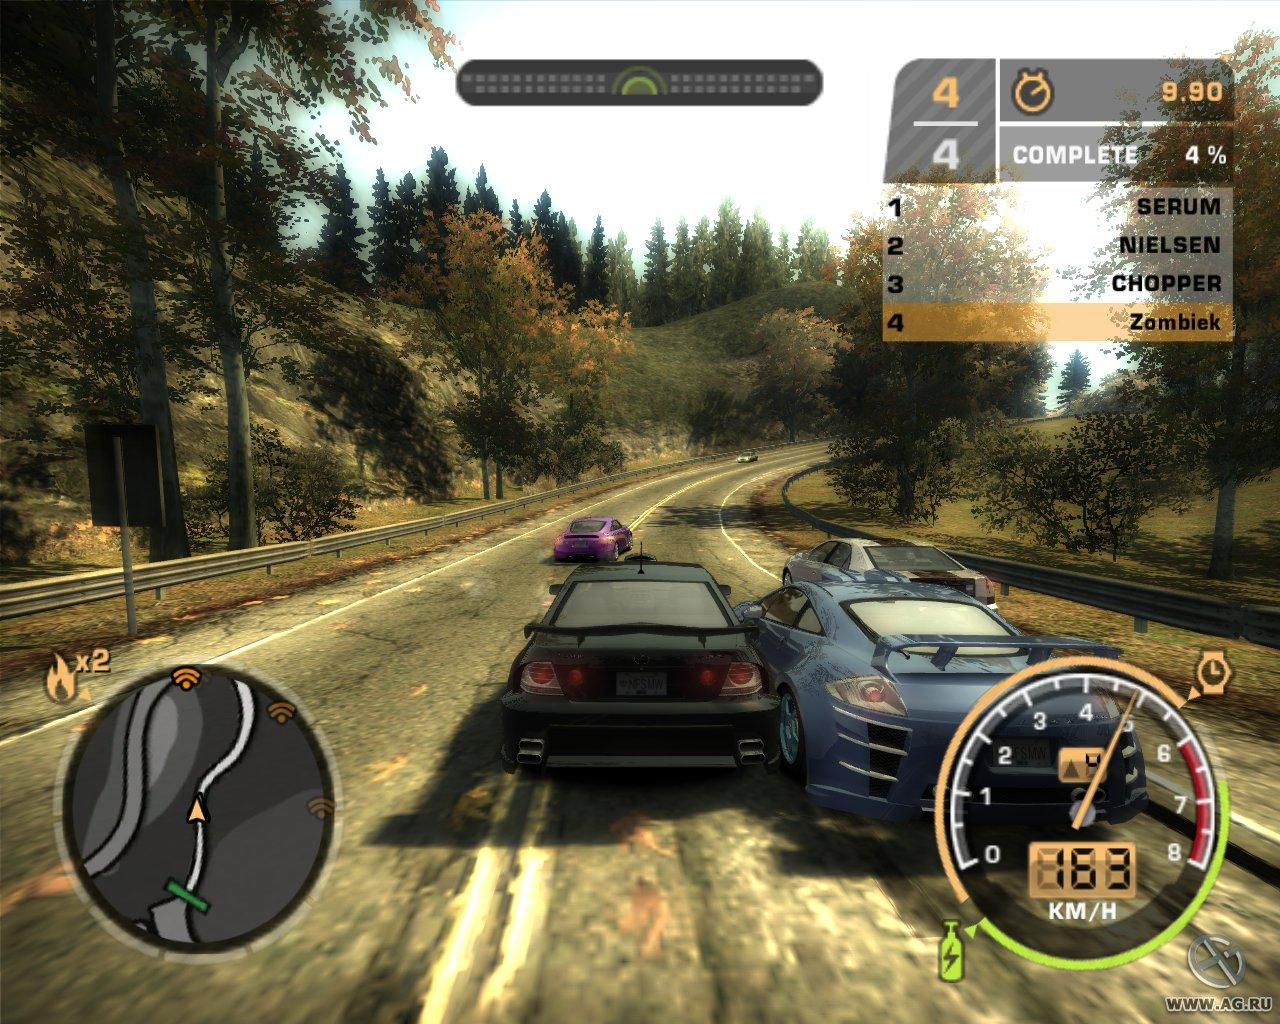 Need For Speed Most Wanted 2012 Pc Setup.exe Missing Download ...